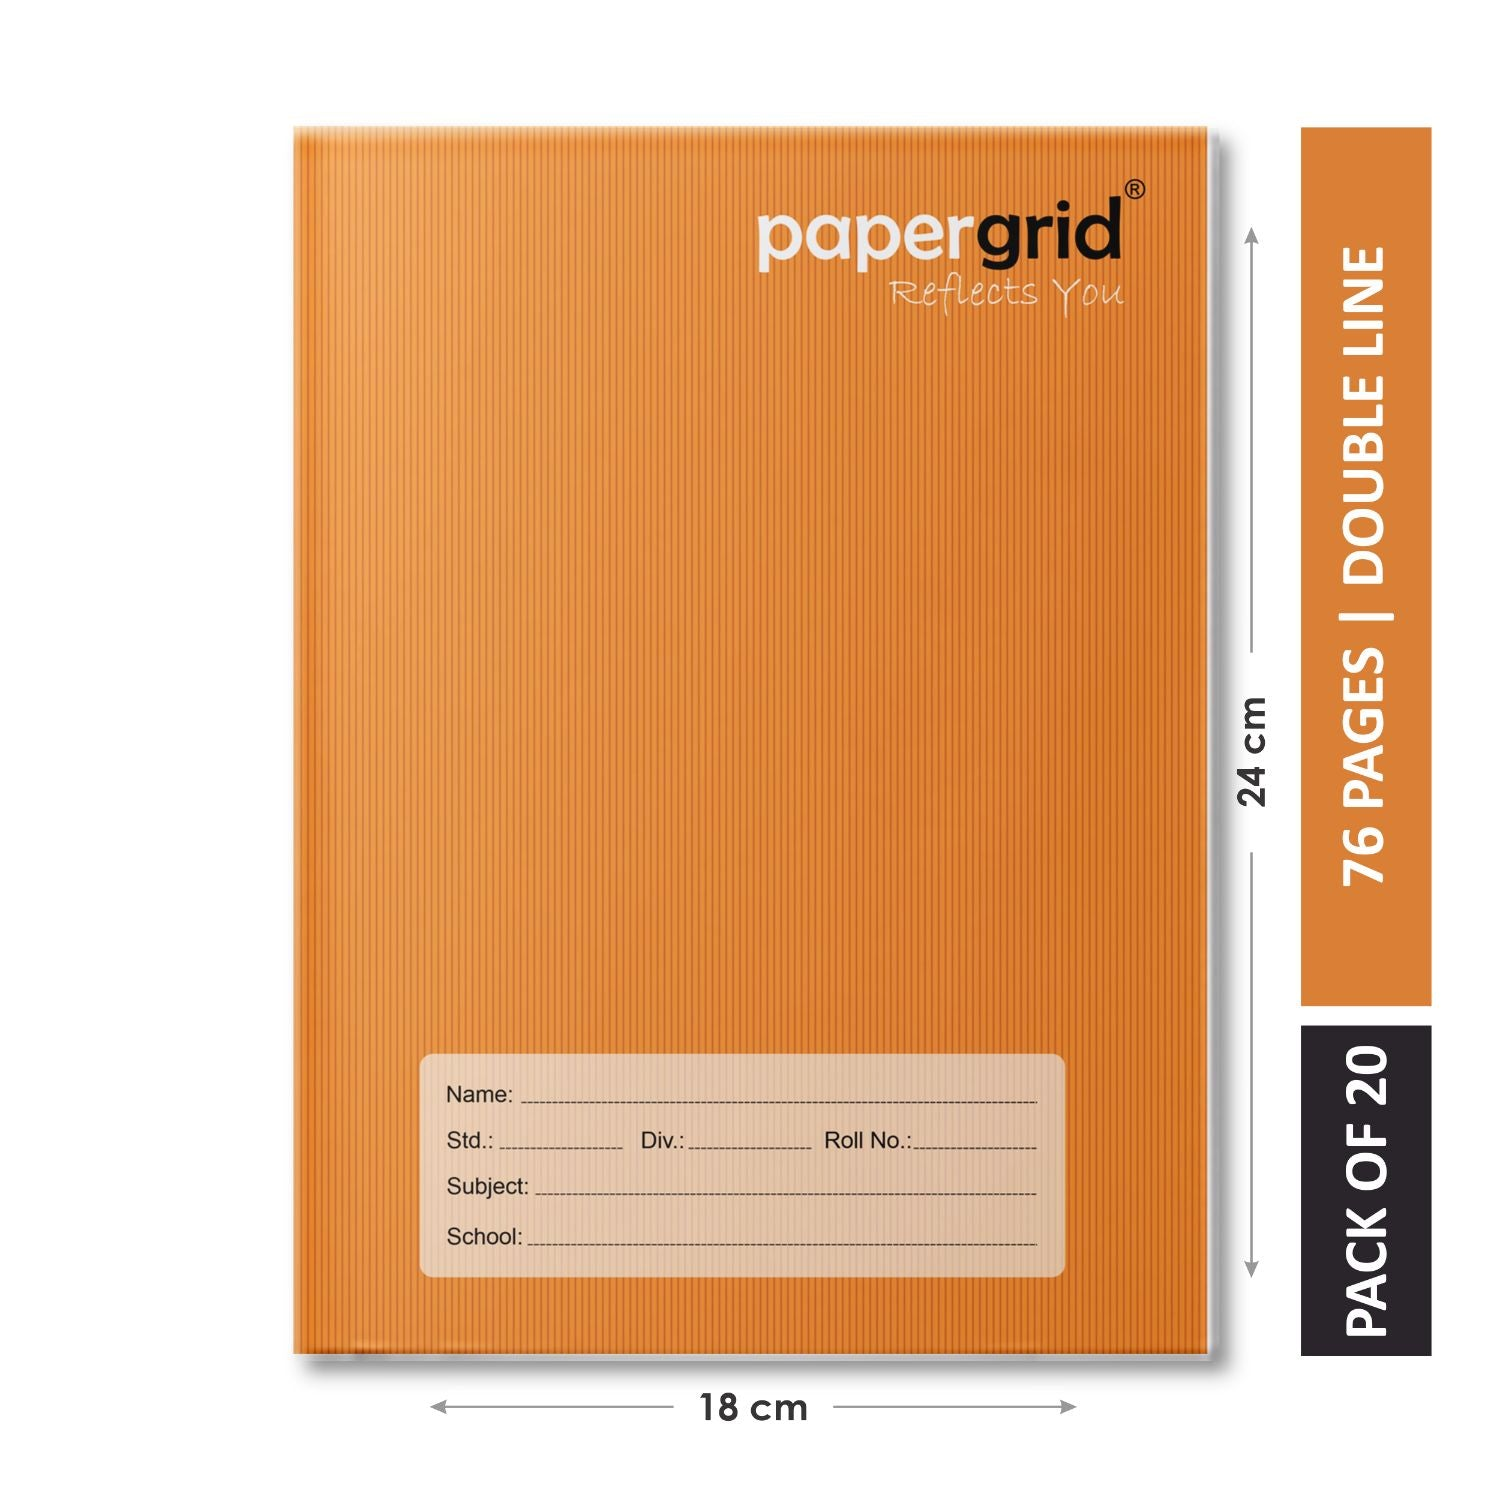 Papergrid Notebook - Brown Cover, King Size (24 cm x 18 cm), Double Line, 76 Pages, Soft Cover - Pack of 20